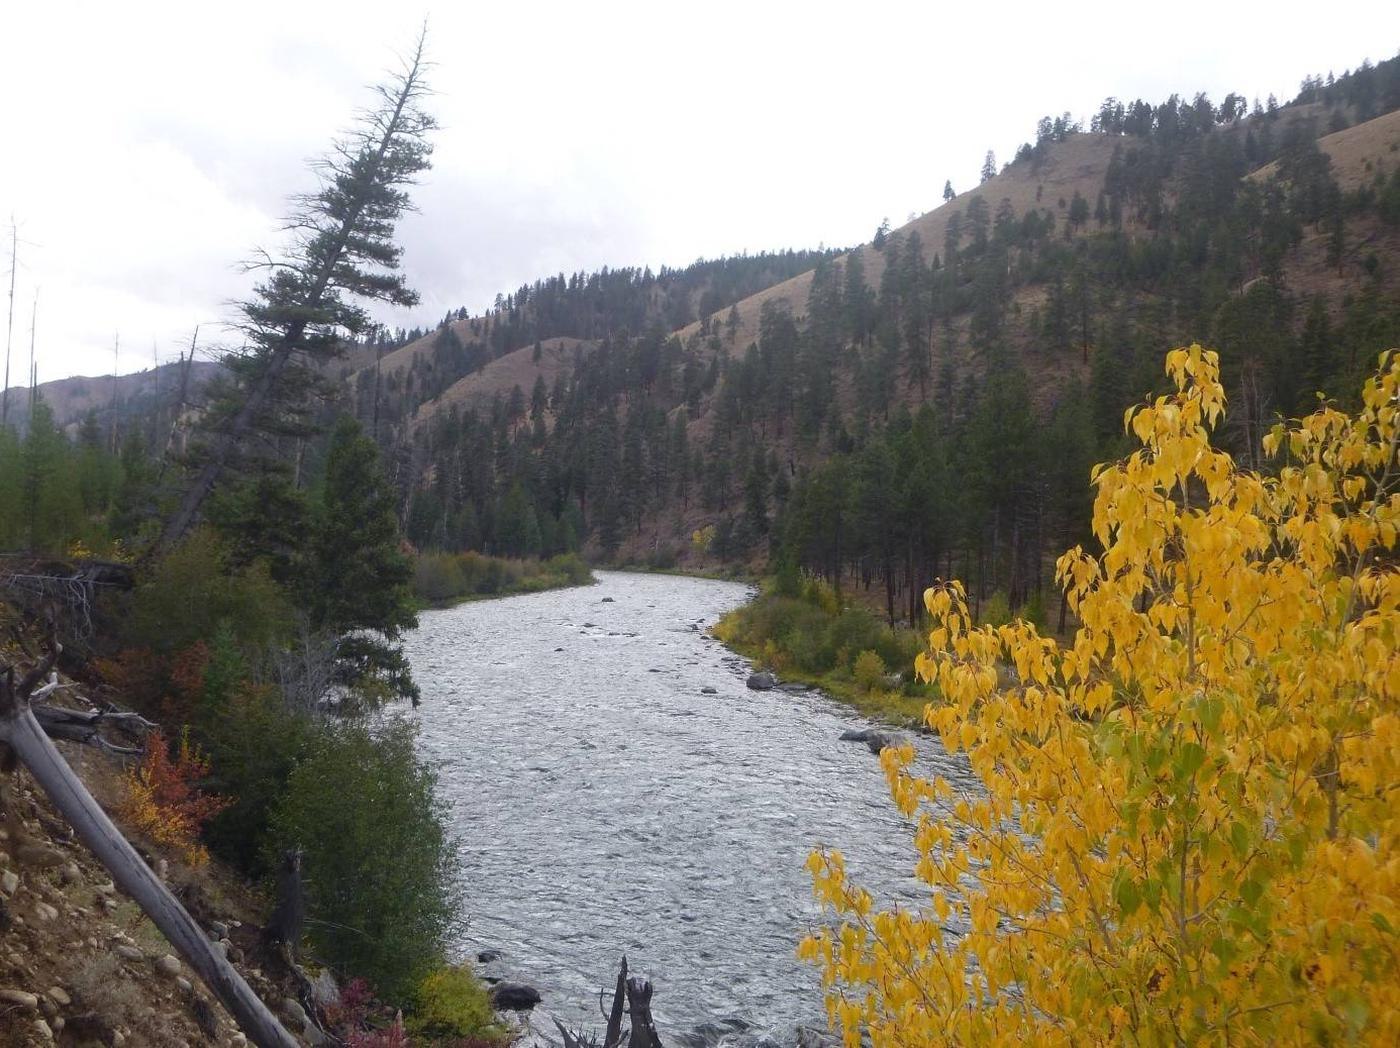 2018 Fall Colors along the Middle Fork of the Salmon River